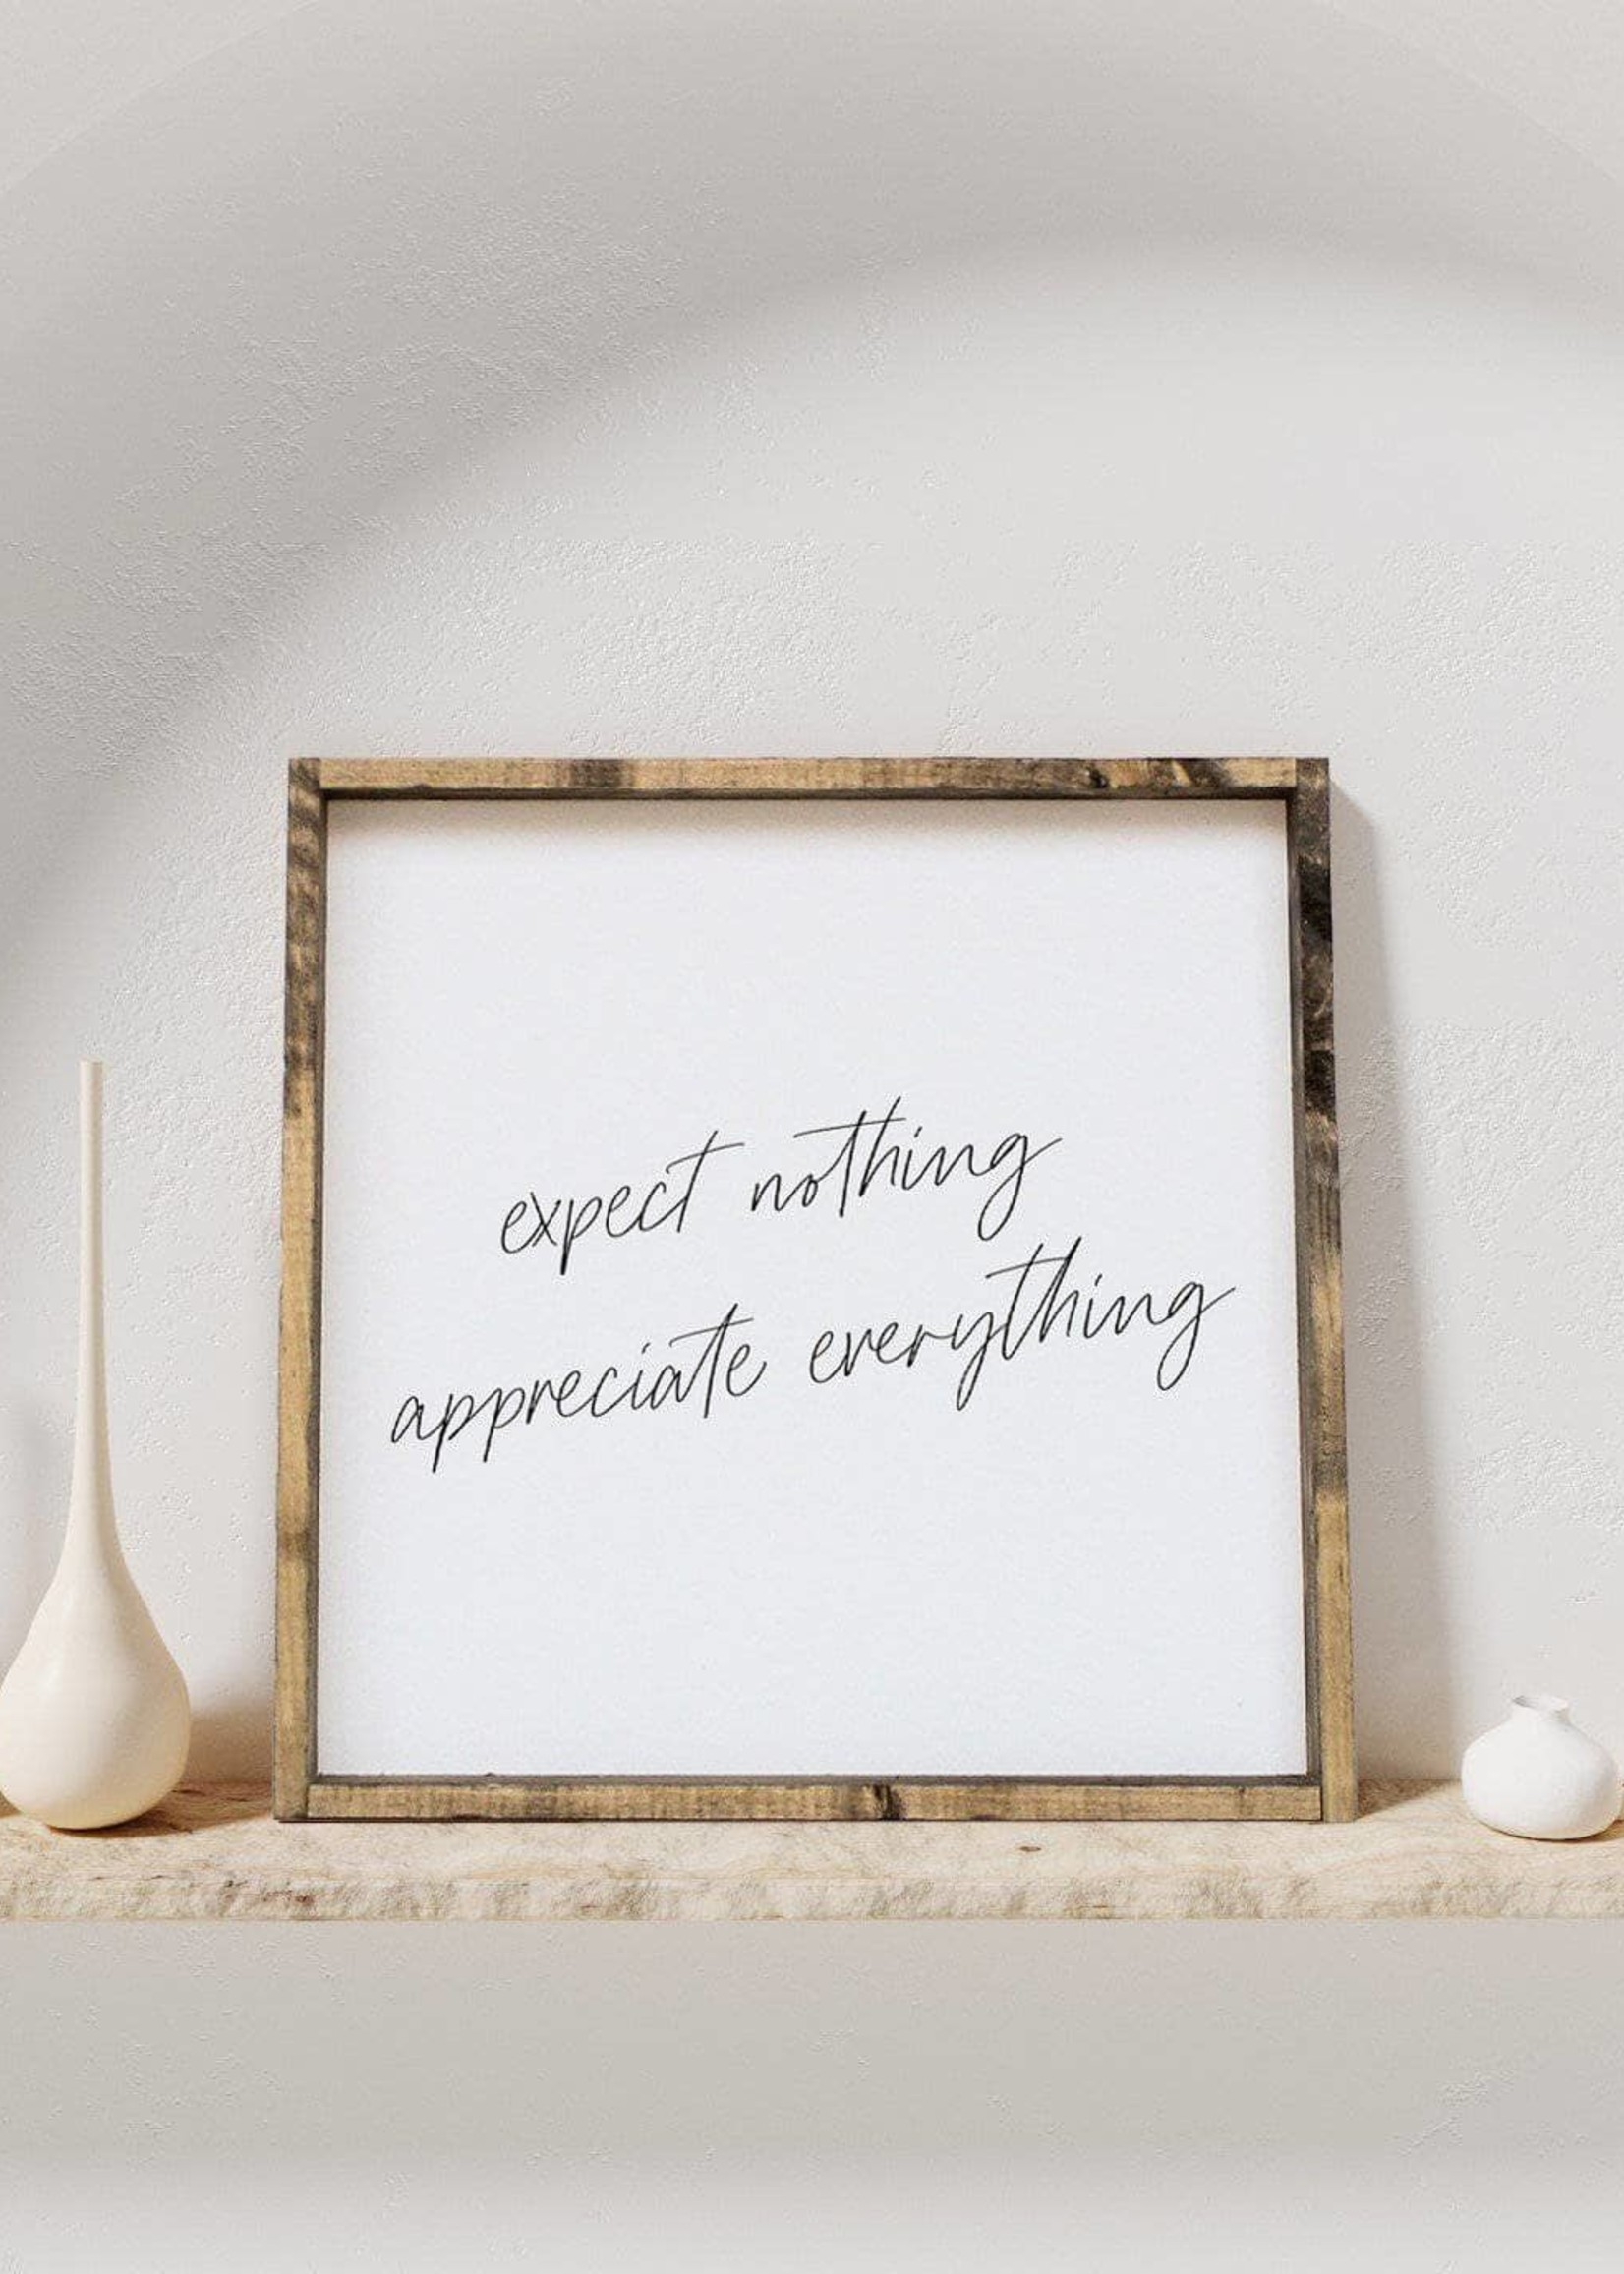 Williamraedesigns Expect Nothing, Appreciate Everything